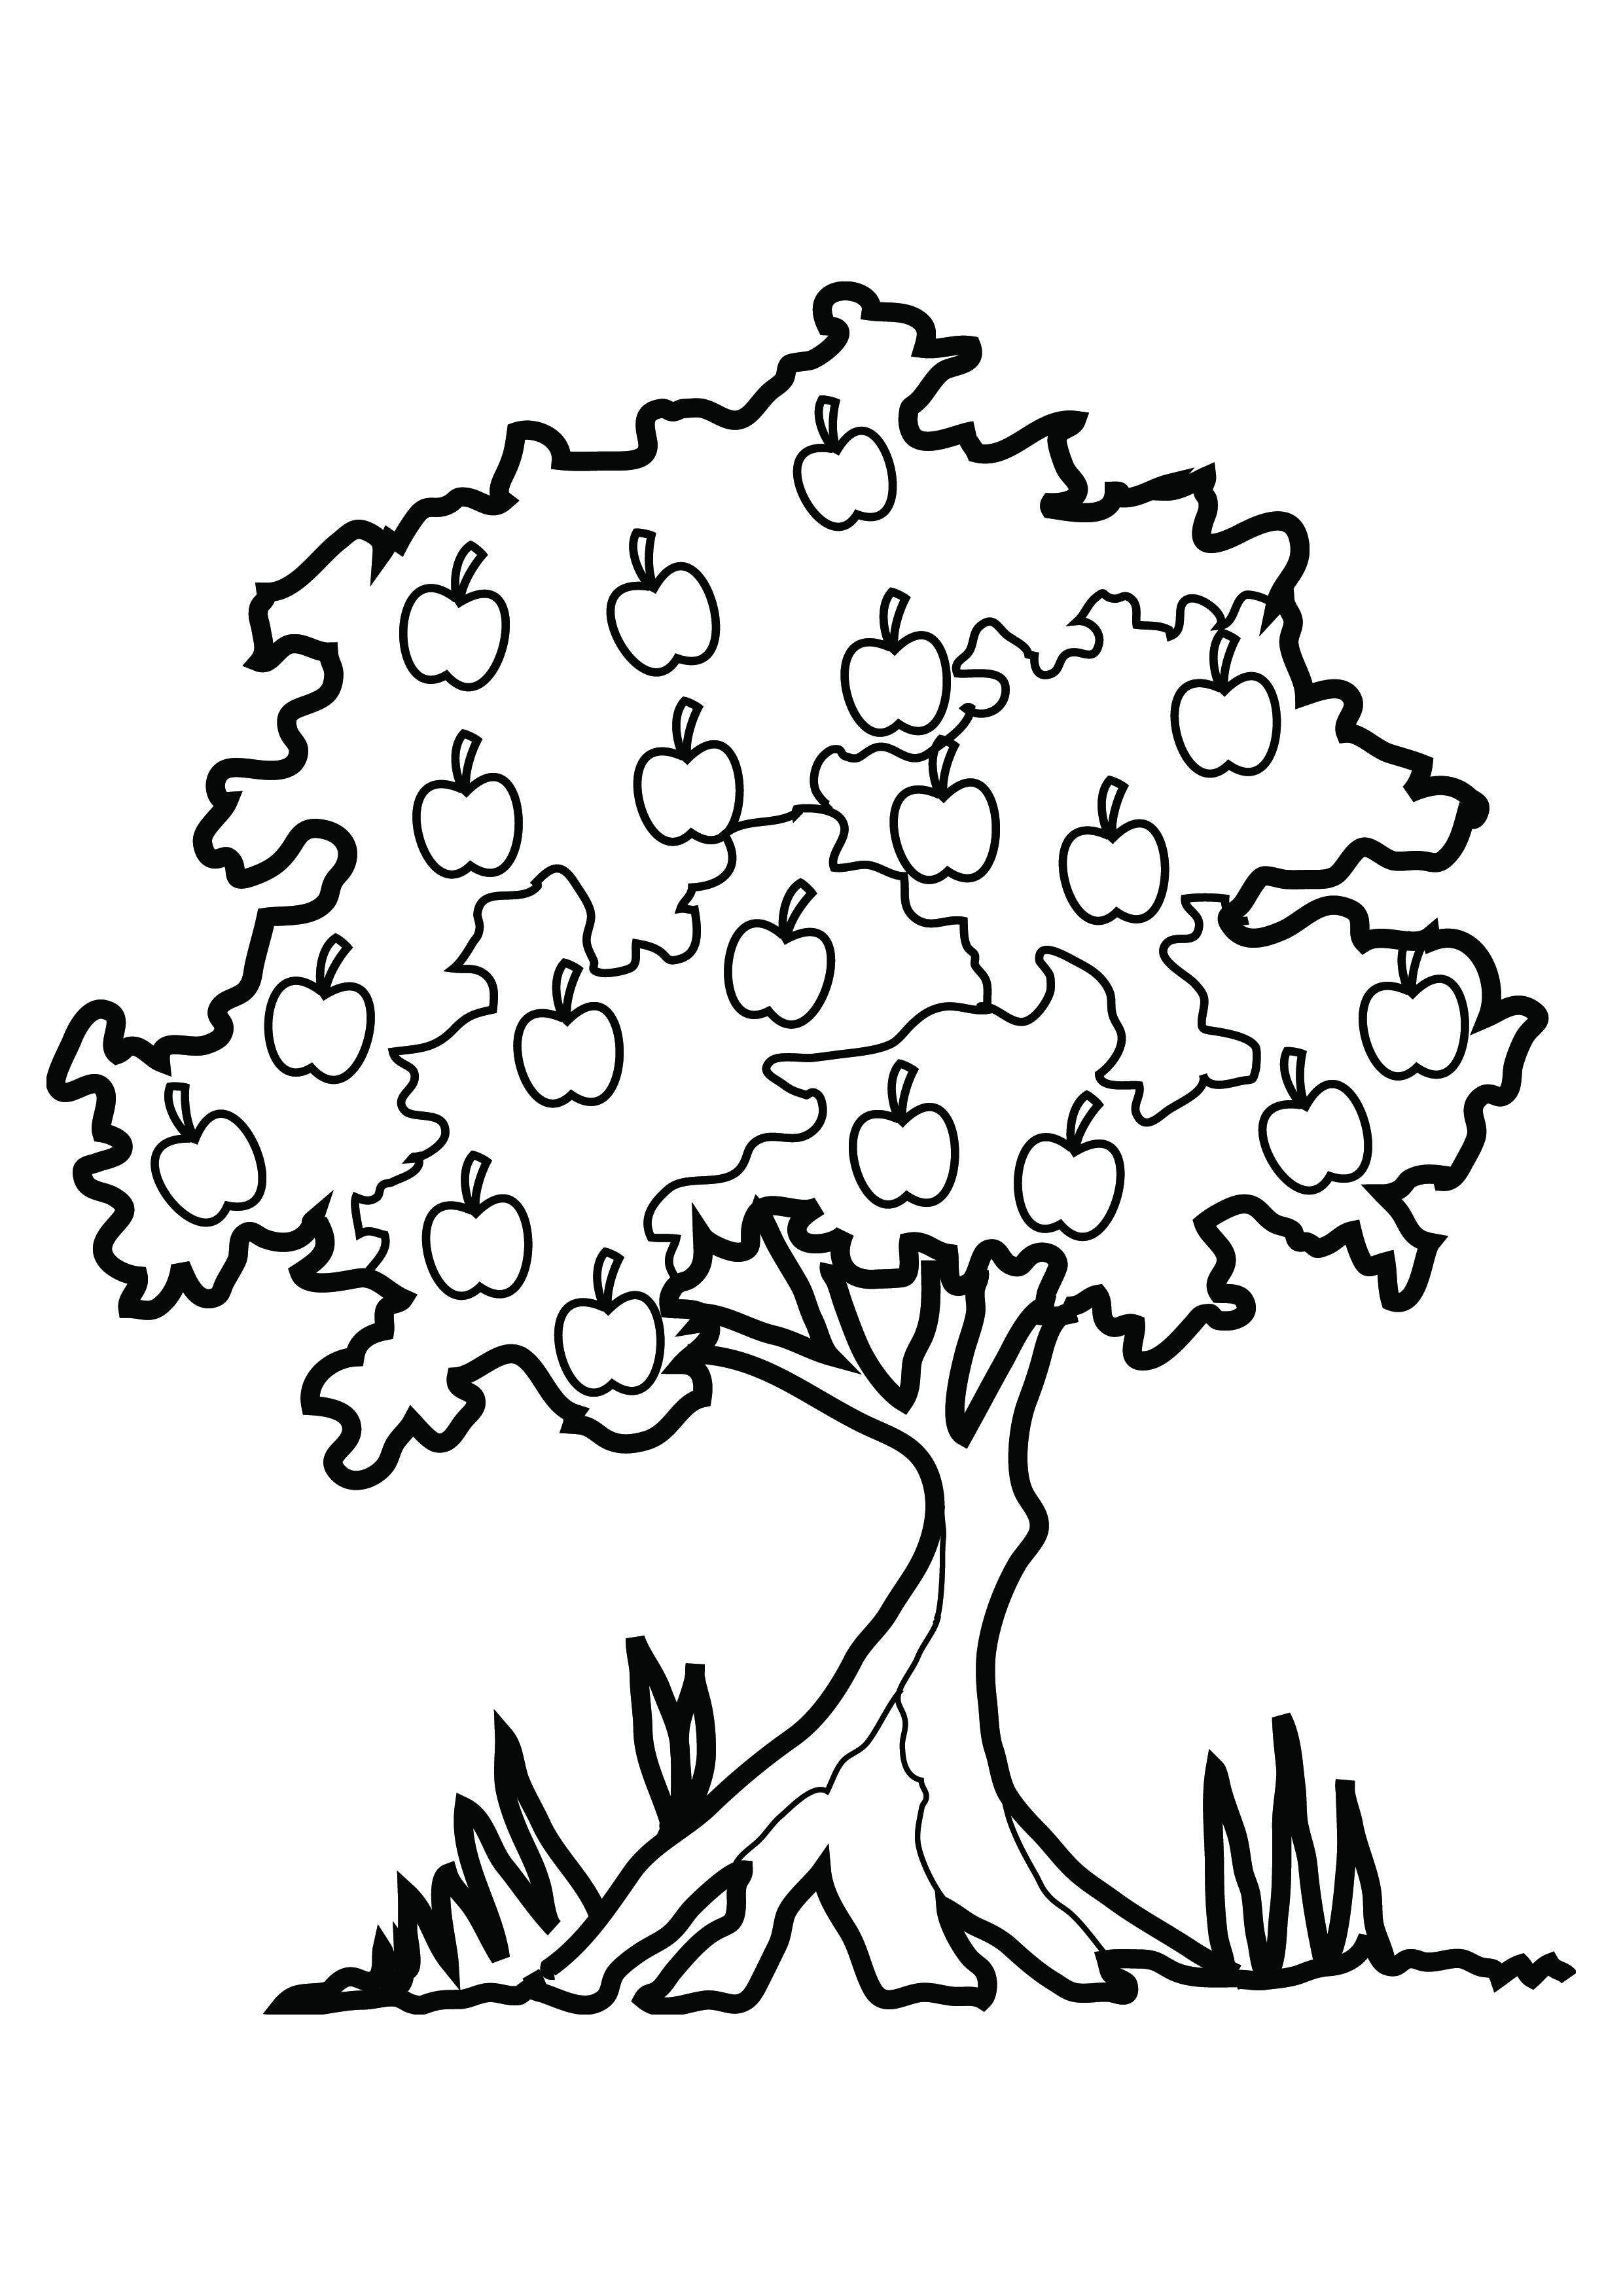 2480x3508 Tree Coloring Pages With Roots To Print Coloring For Kids